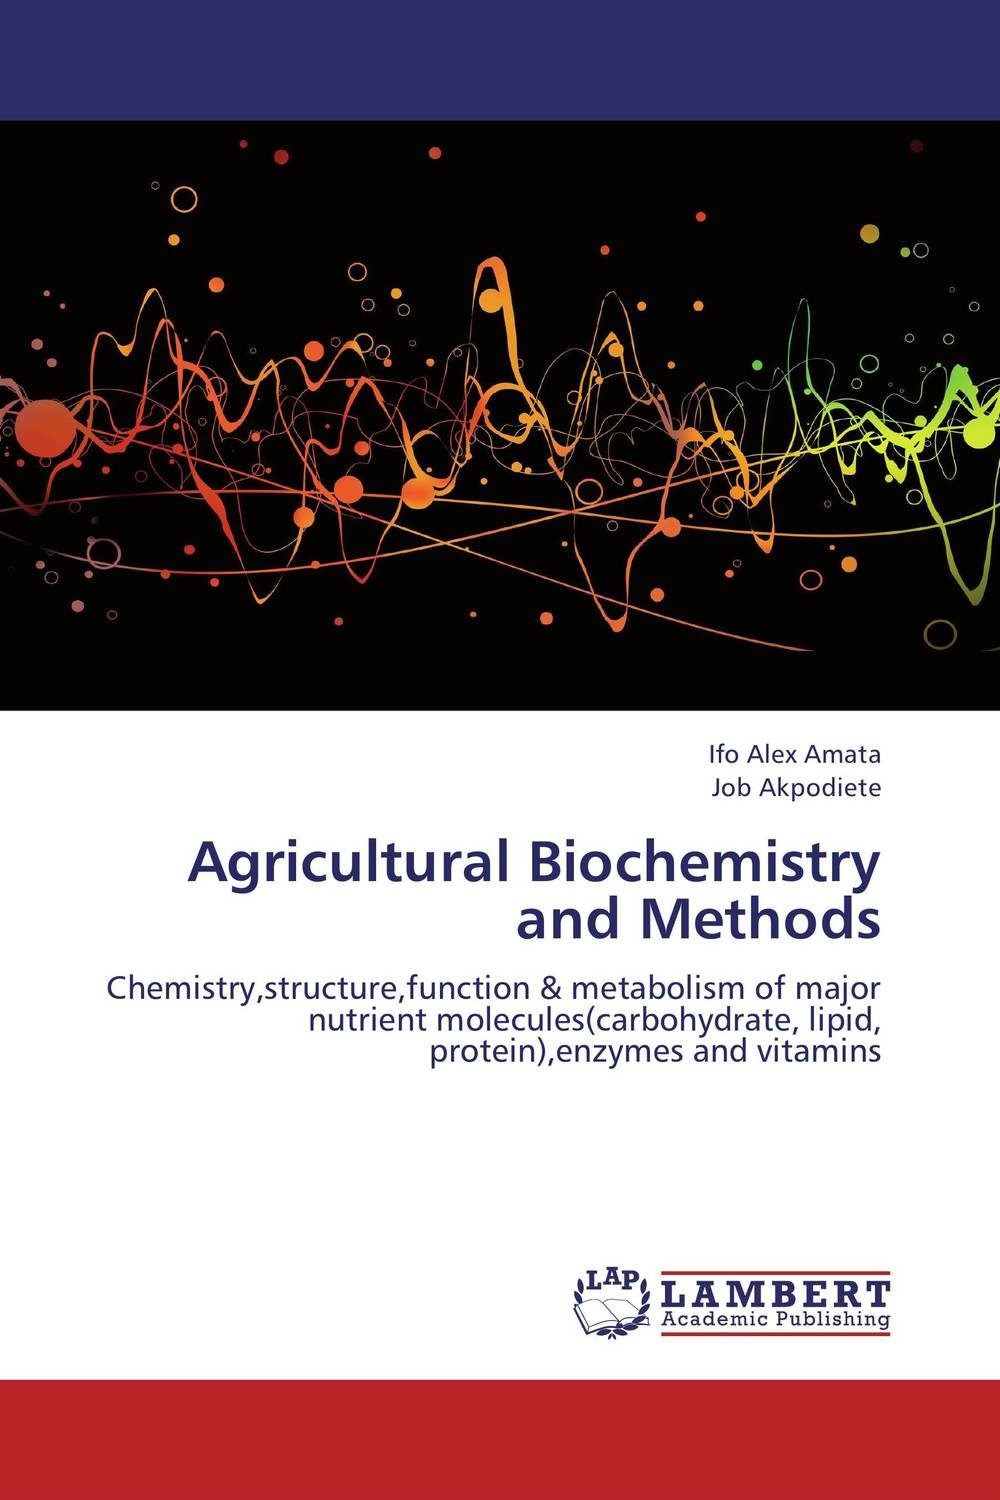 Agricultural Biochemistry and Methods ifo alex amata and job akpodiete agricultural biochemistry and methods